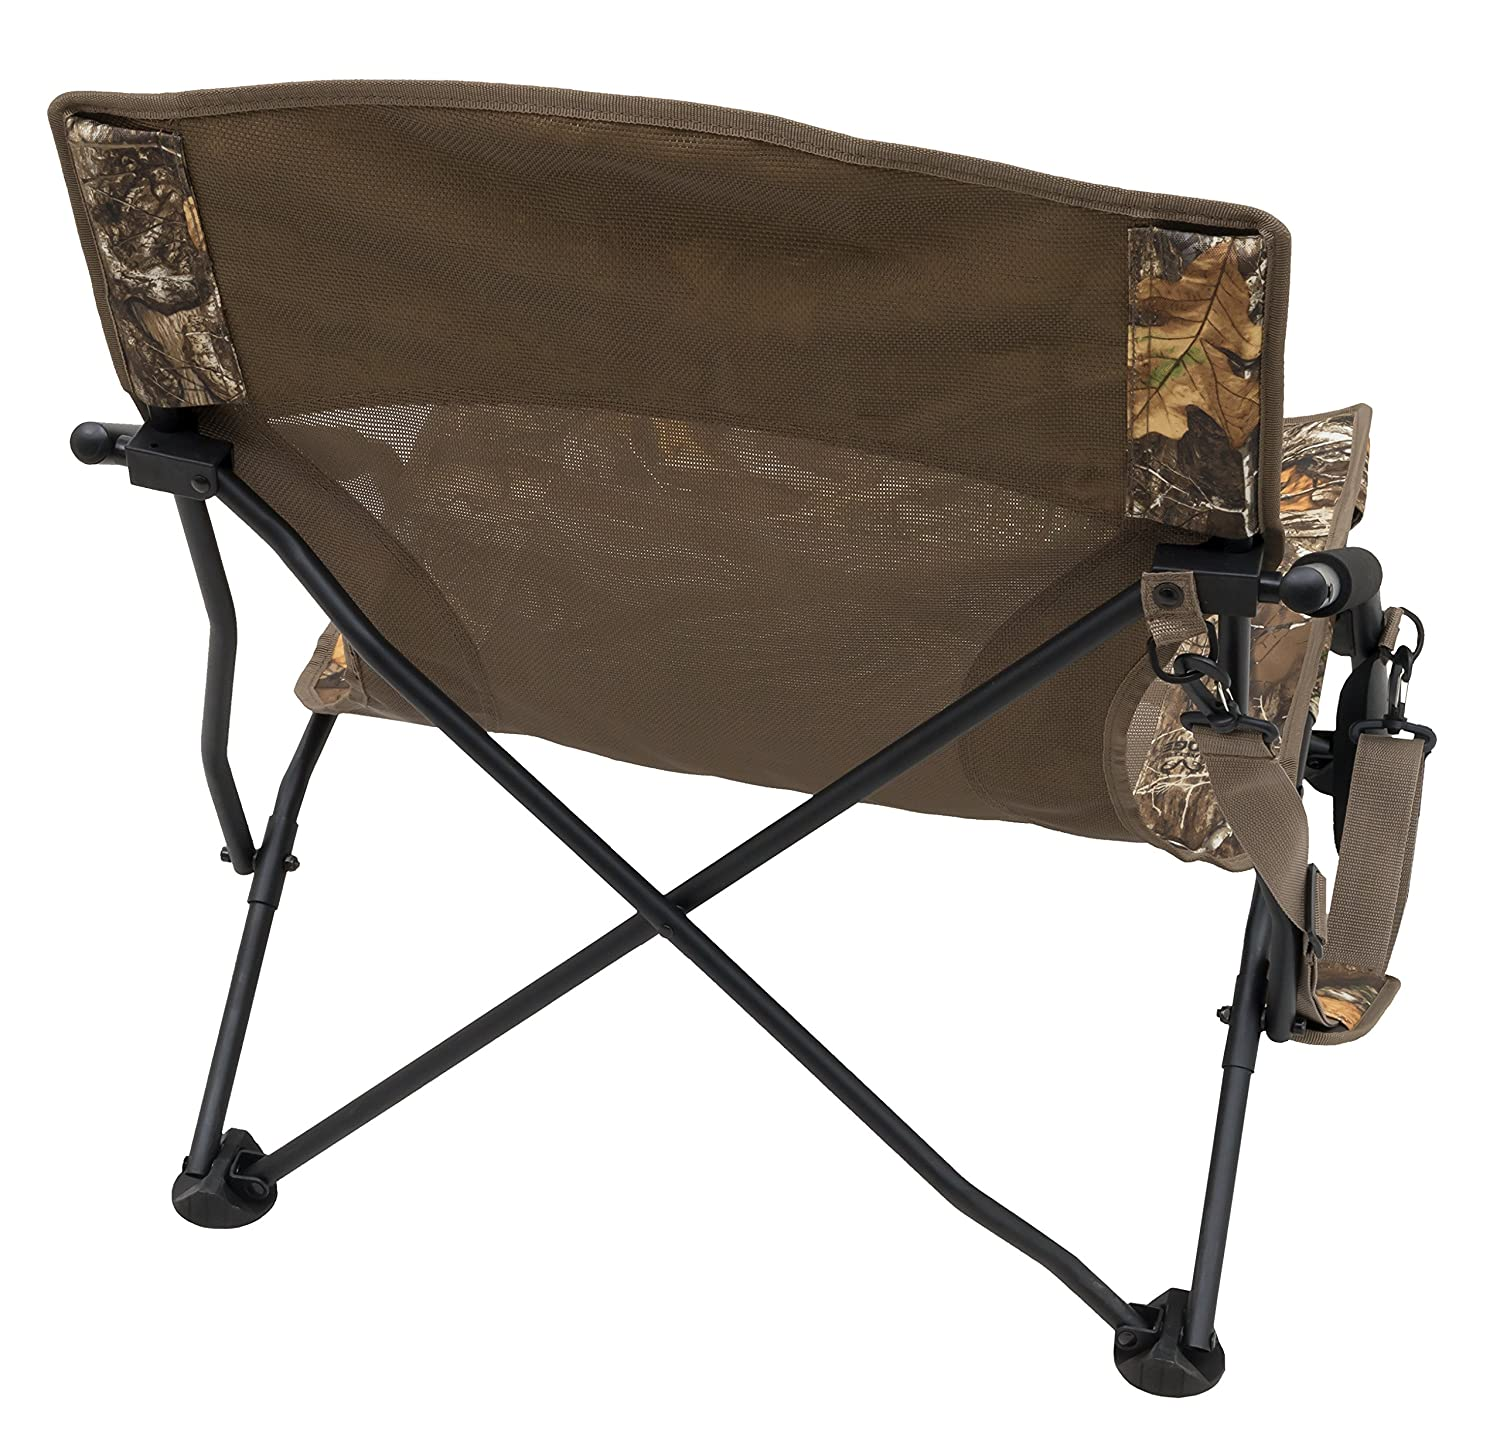 Astonishing Browning Camping Strutter Folding Chair Amazon Co Uk Inzonedesignstudio Interior Chair Design Inzonedesignstudiocom